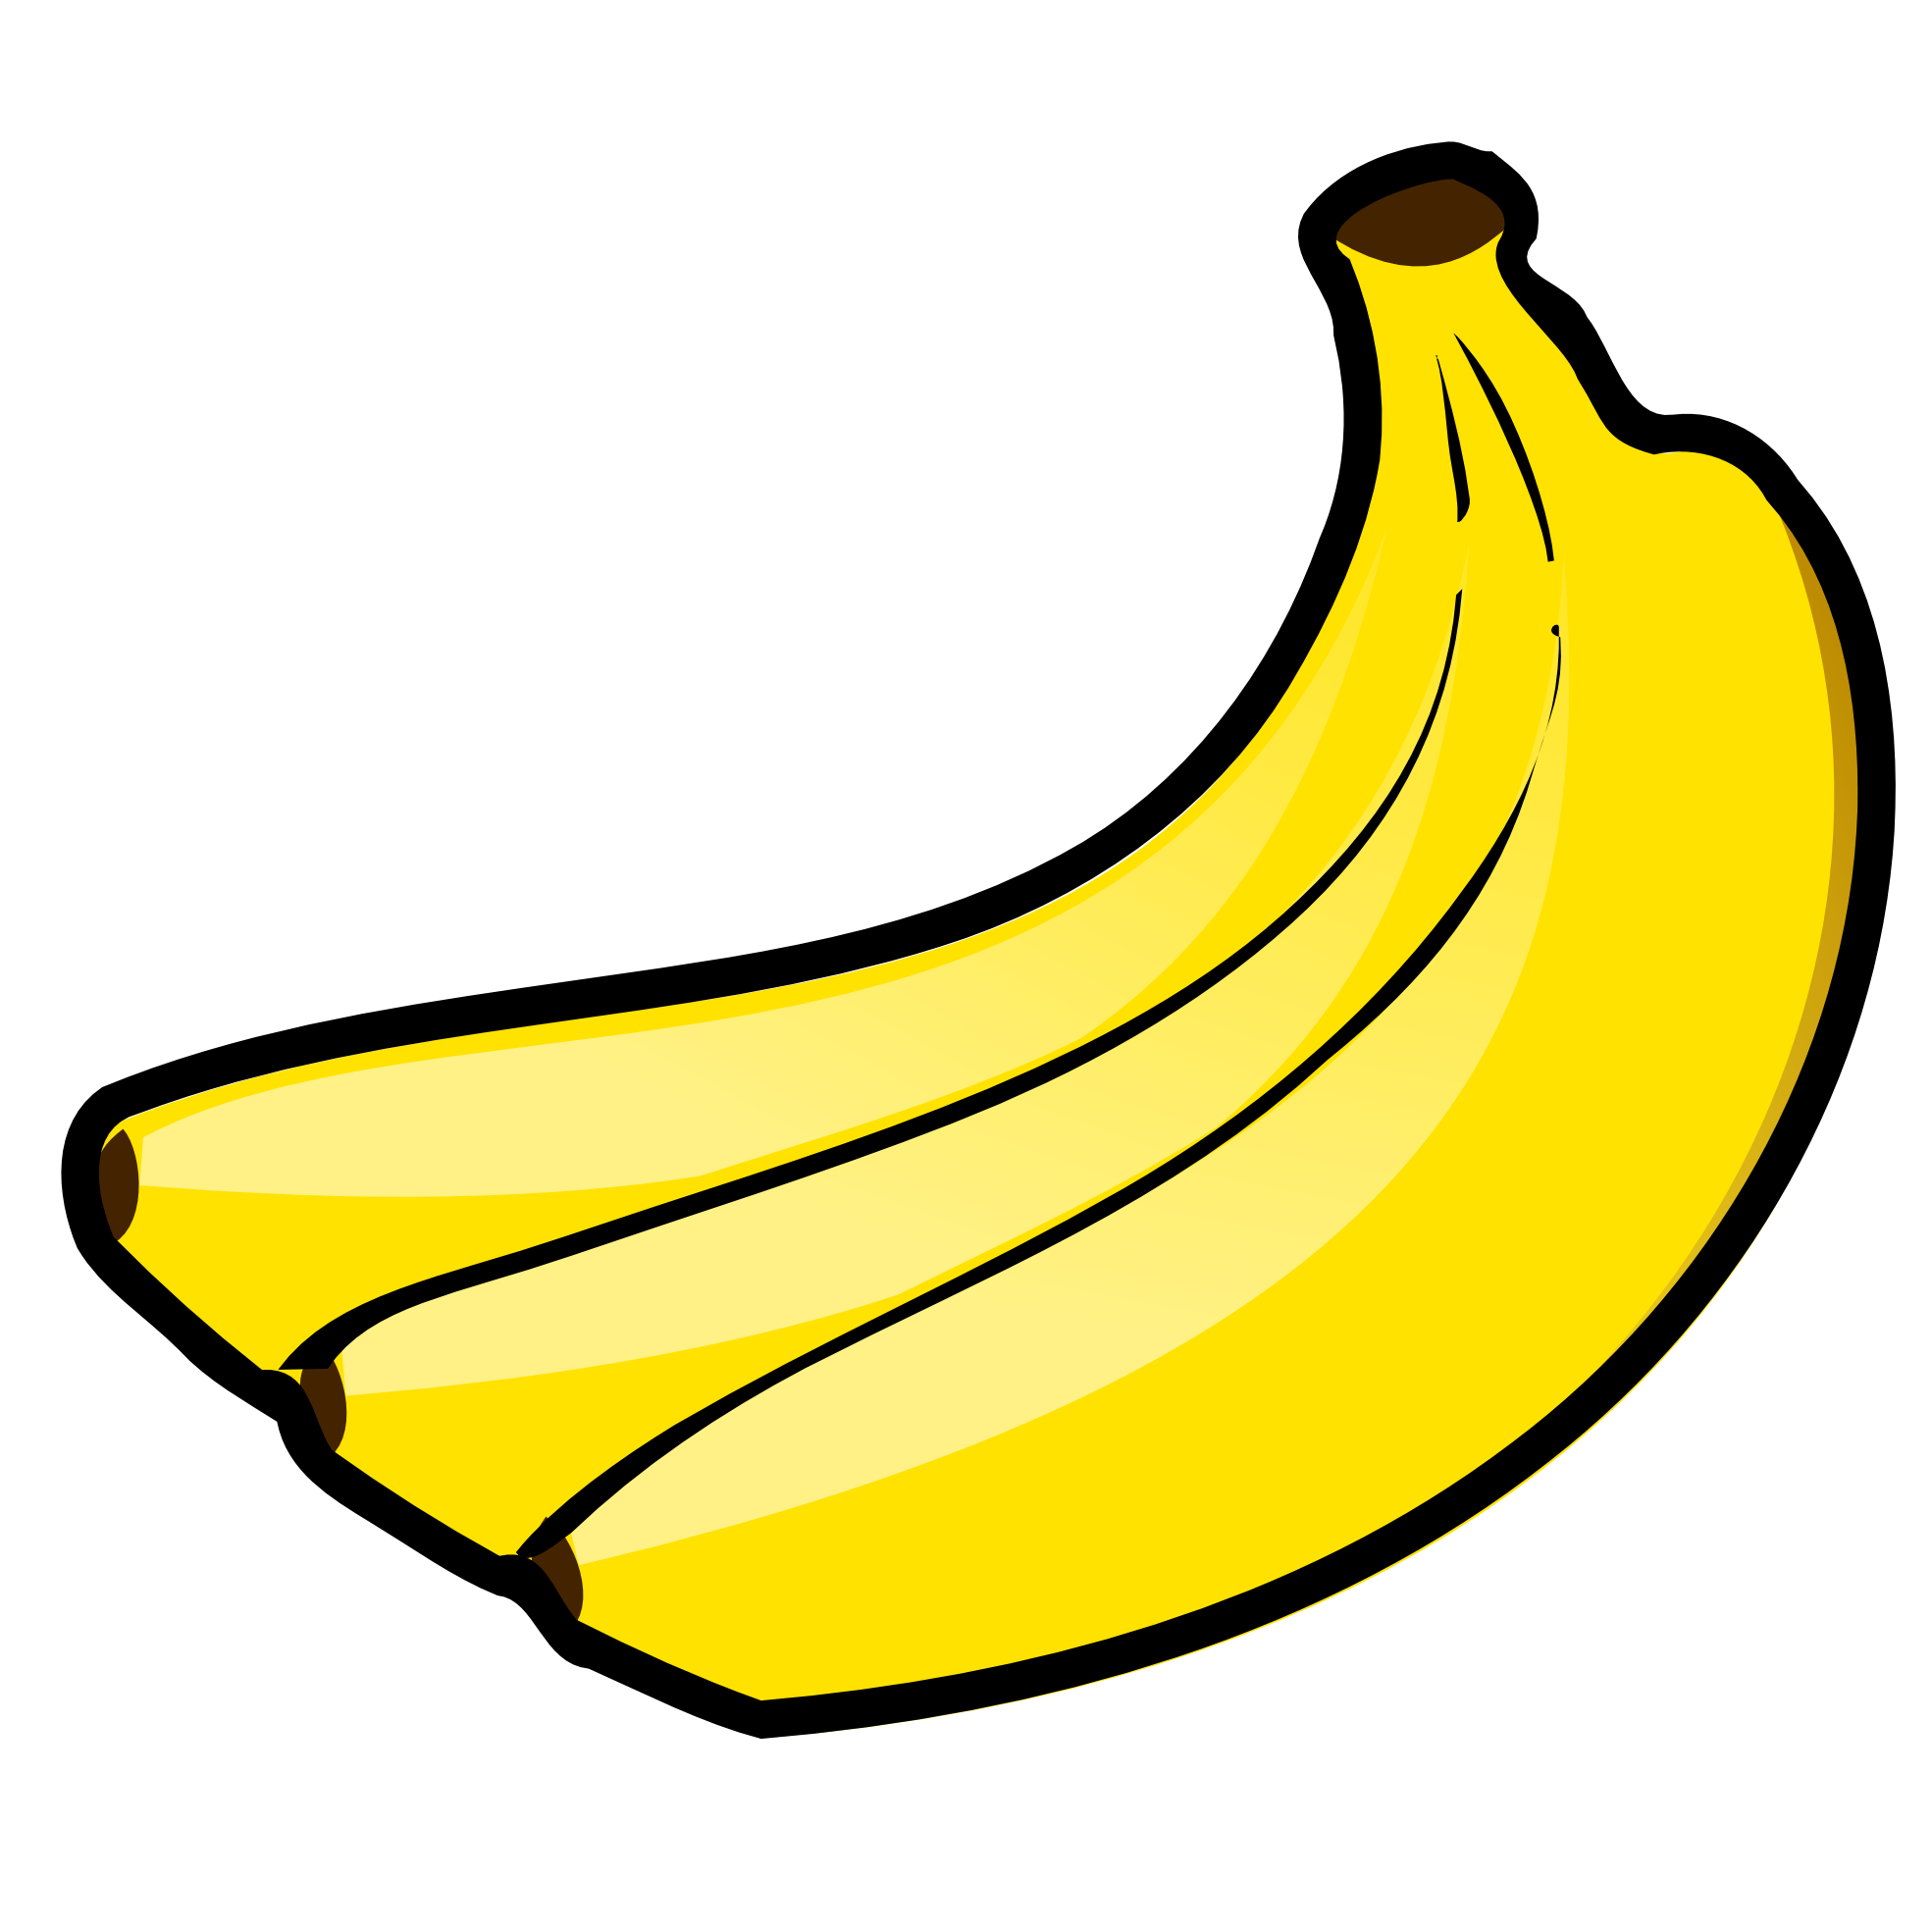 Png Banana High quality Download